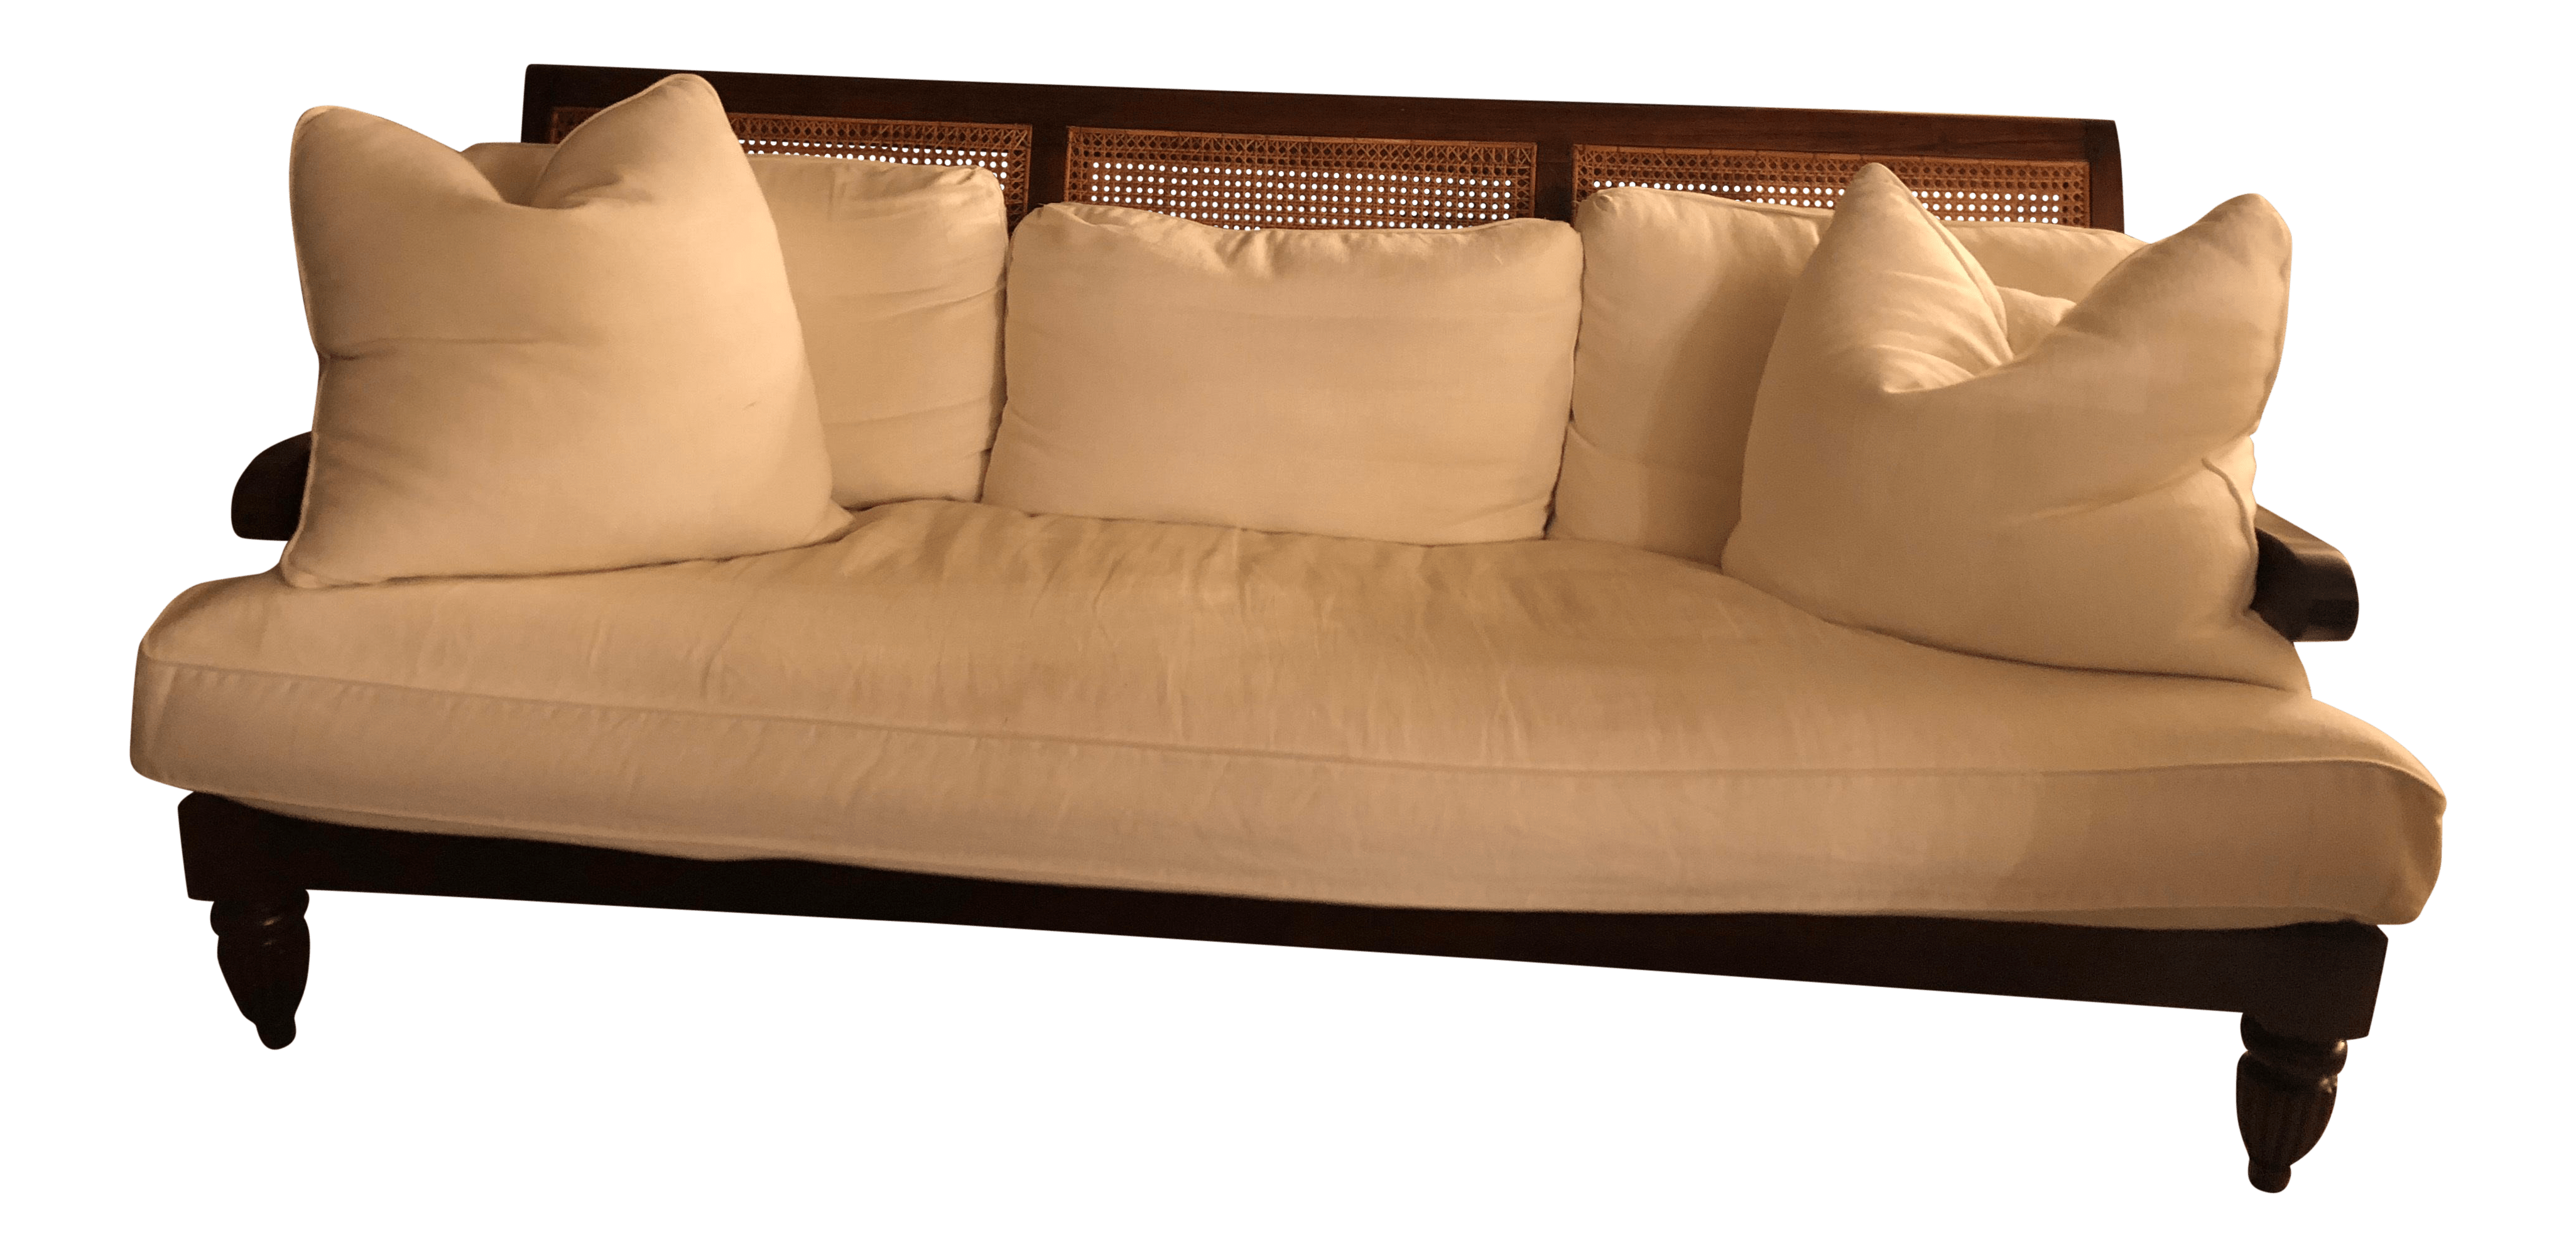 colonial sofa sets bed and design robert lighten british chairish for sale